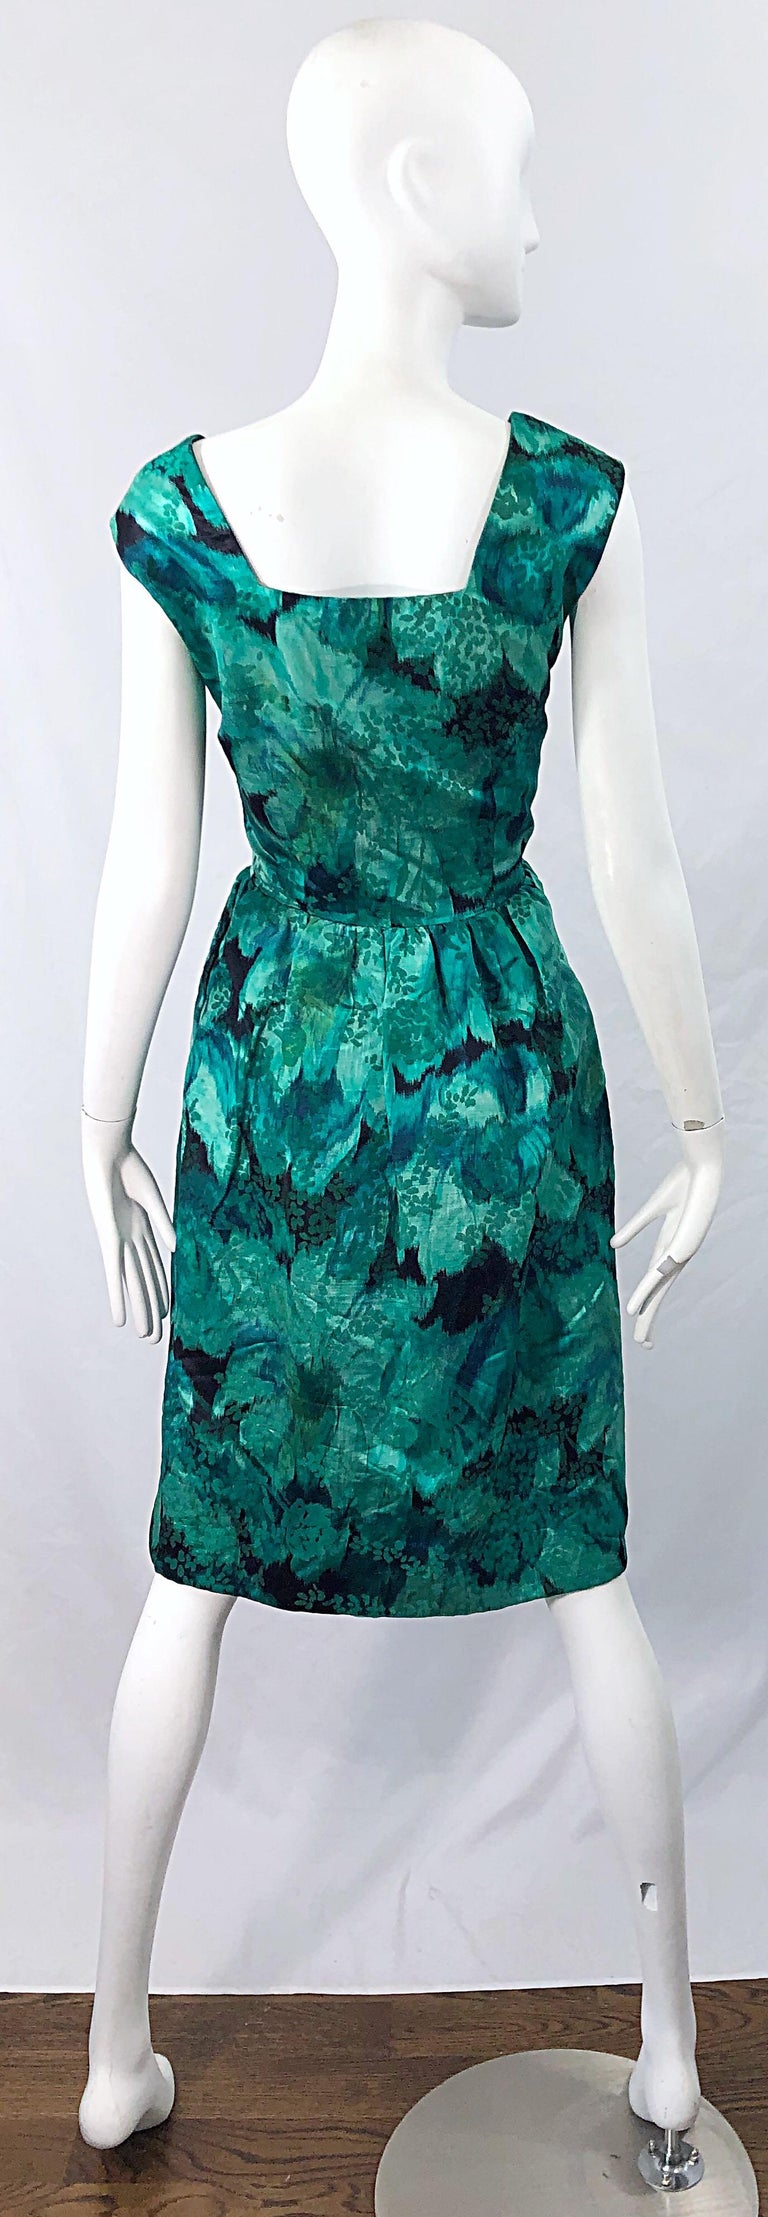 1950s Demi Couture Green Botanical Floral Silk Fit n' Flare Vintage 50s Dress In Excellent Condition For Sale In Chicago, IL